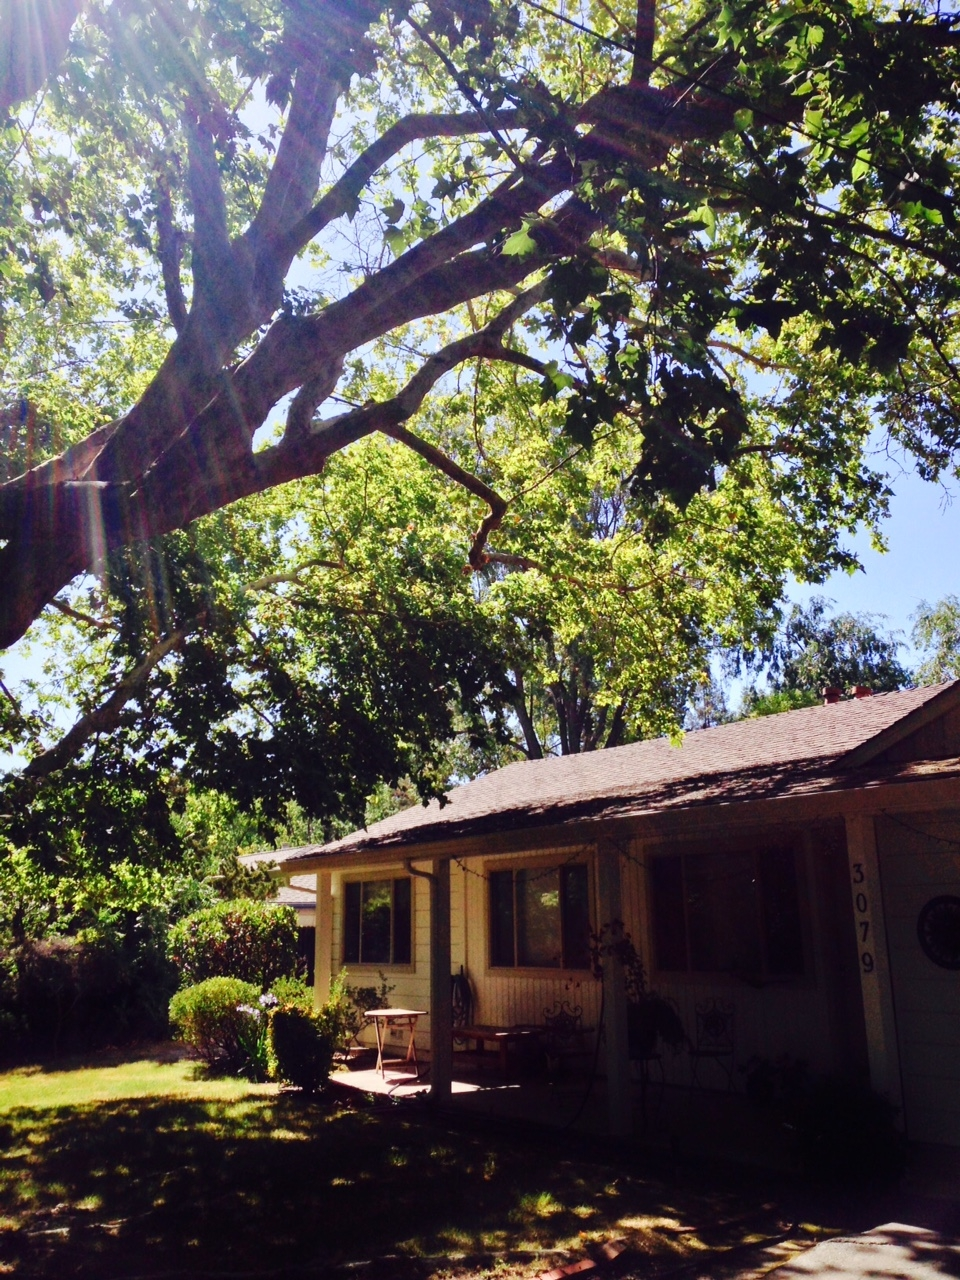 Sycamore Tree Branches Over Roof